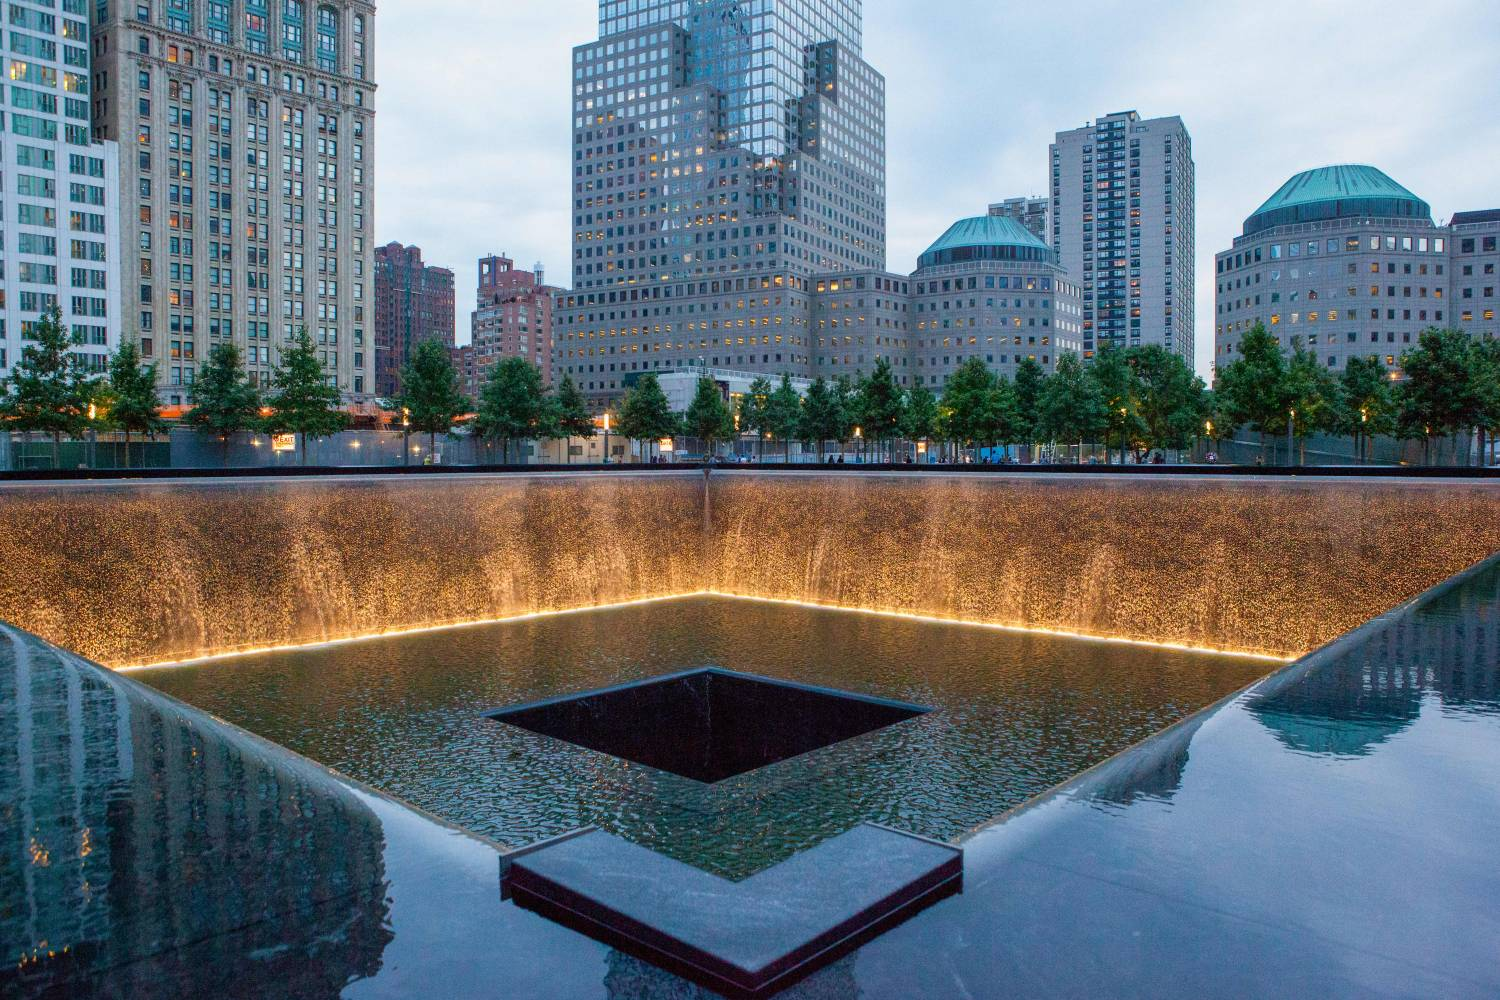 9/11 Memorial & Museum | The Official Guide to New York City